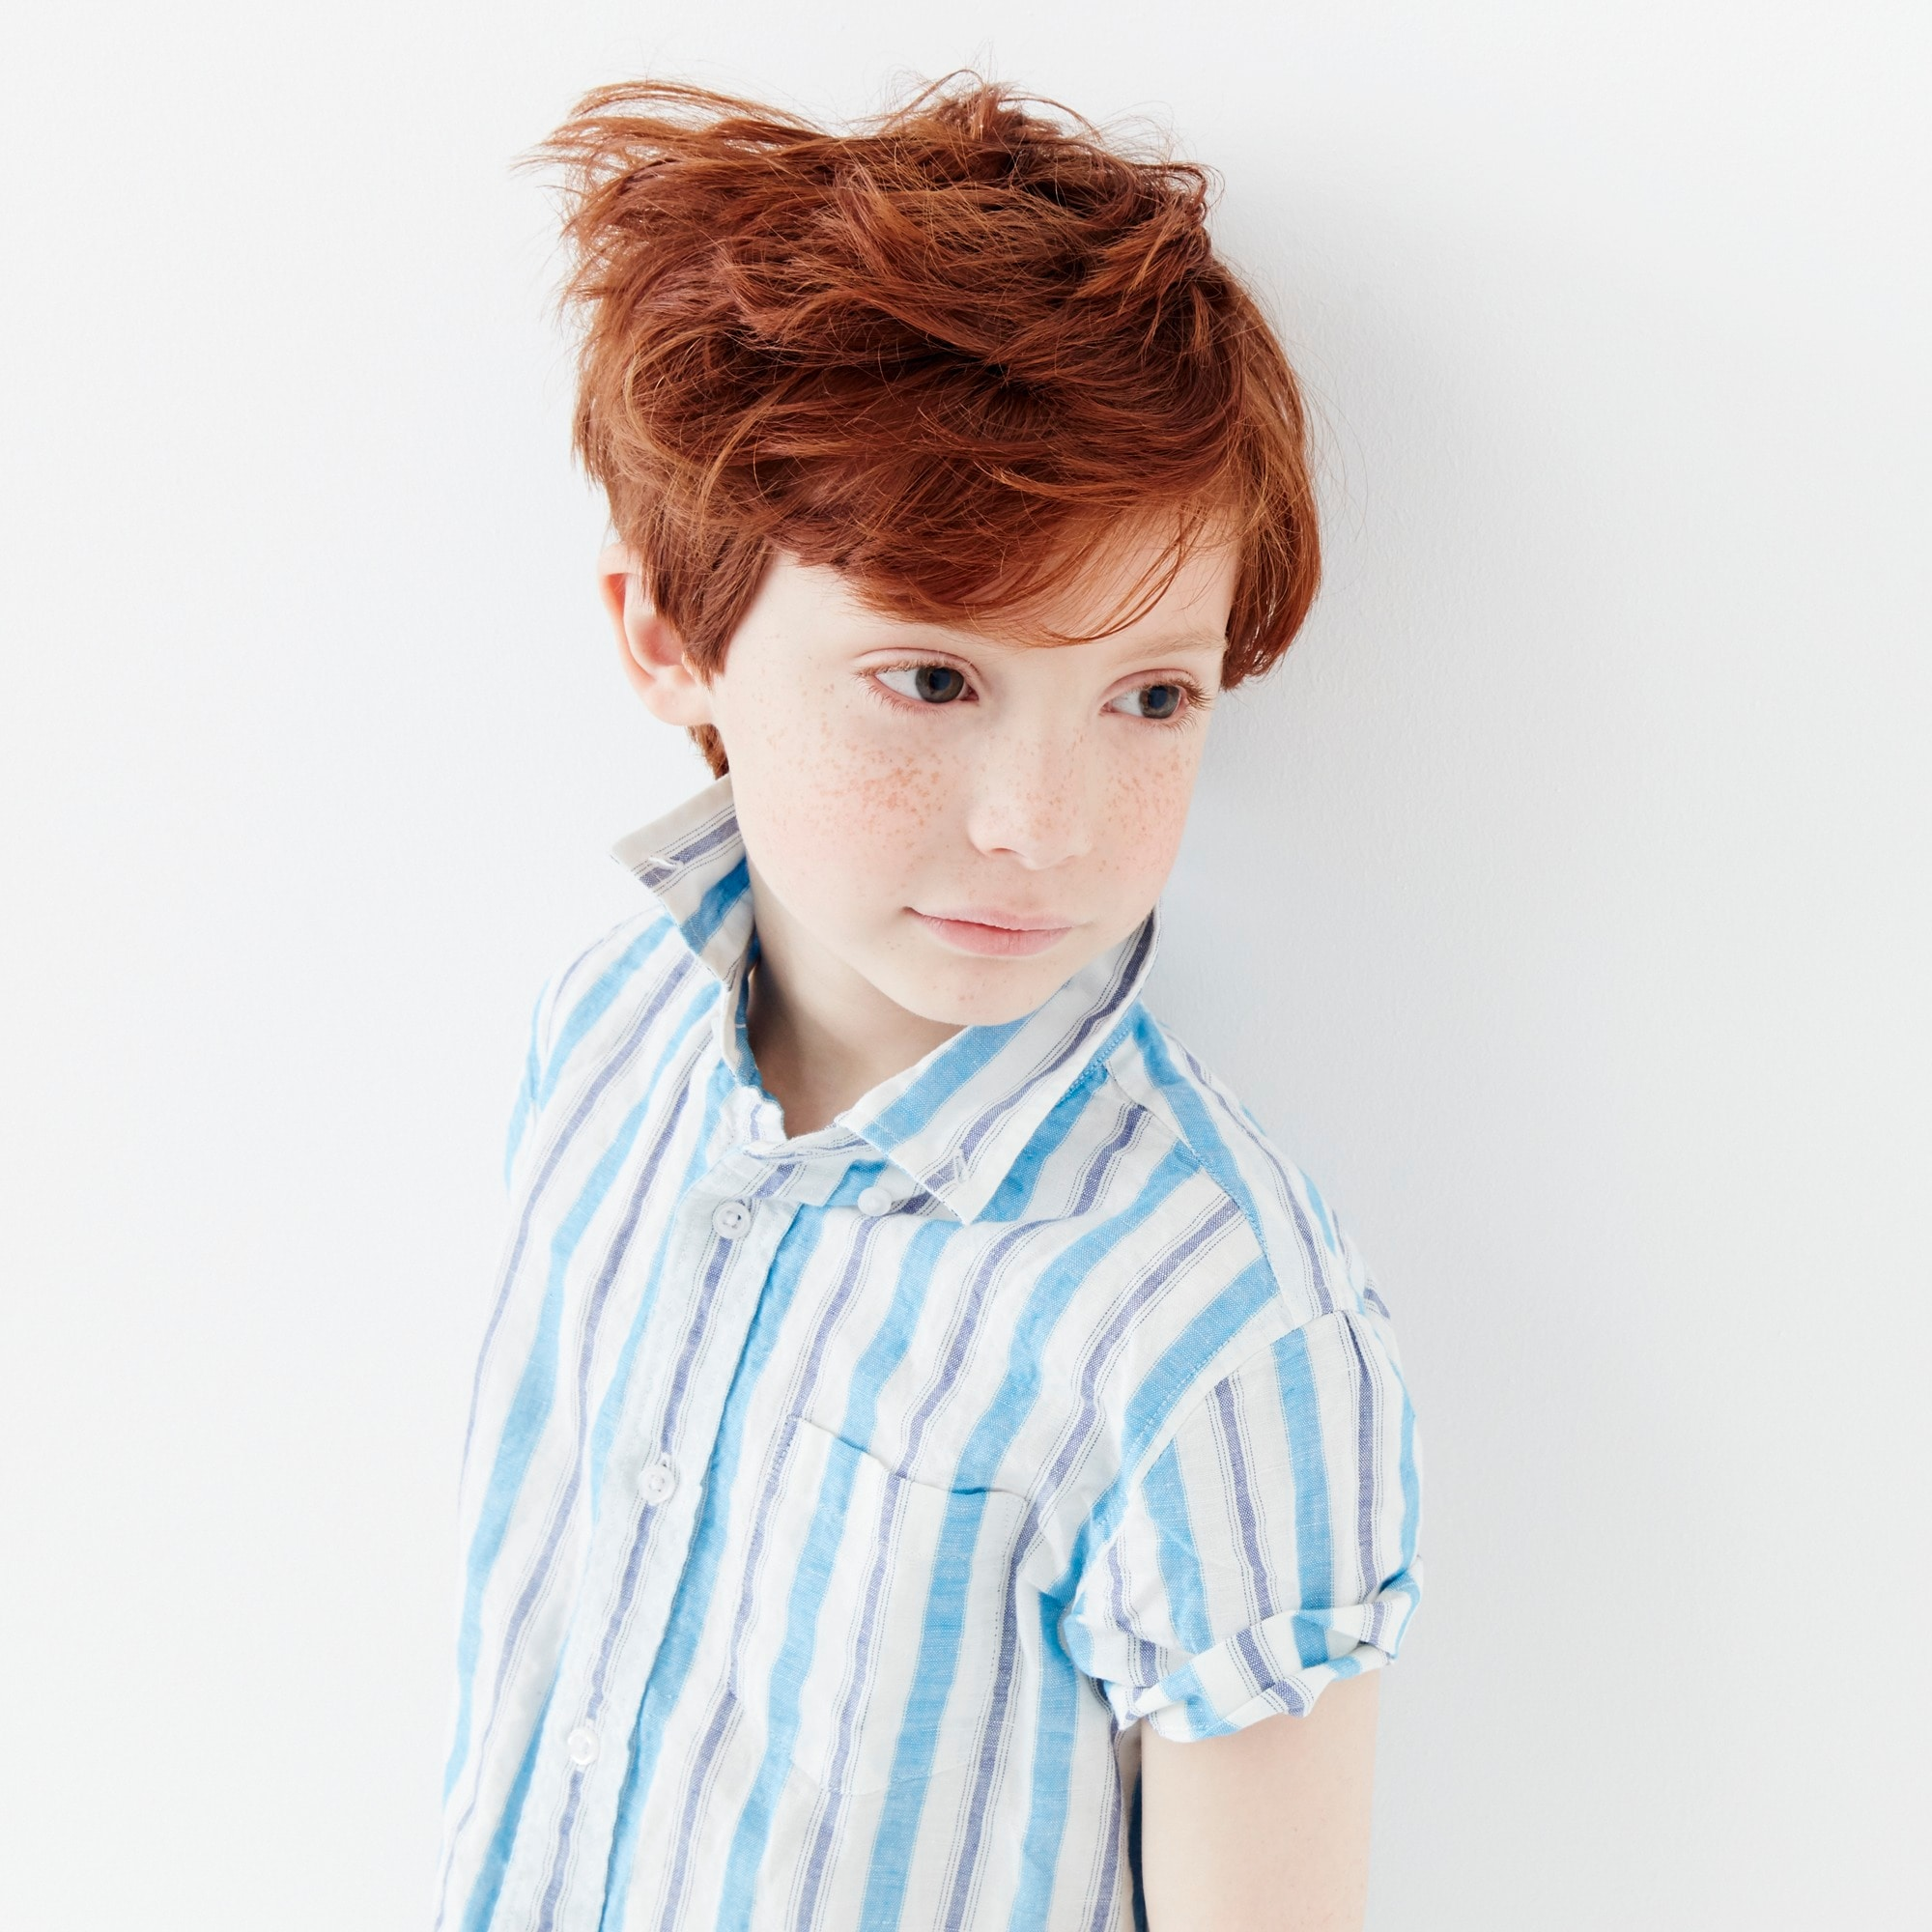 Boys' short-sleeve shirt in stripes